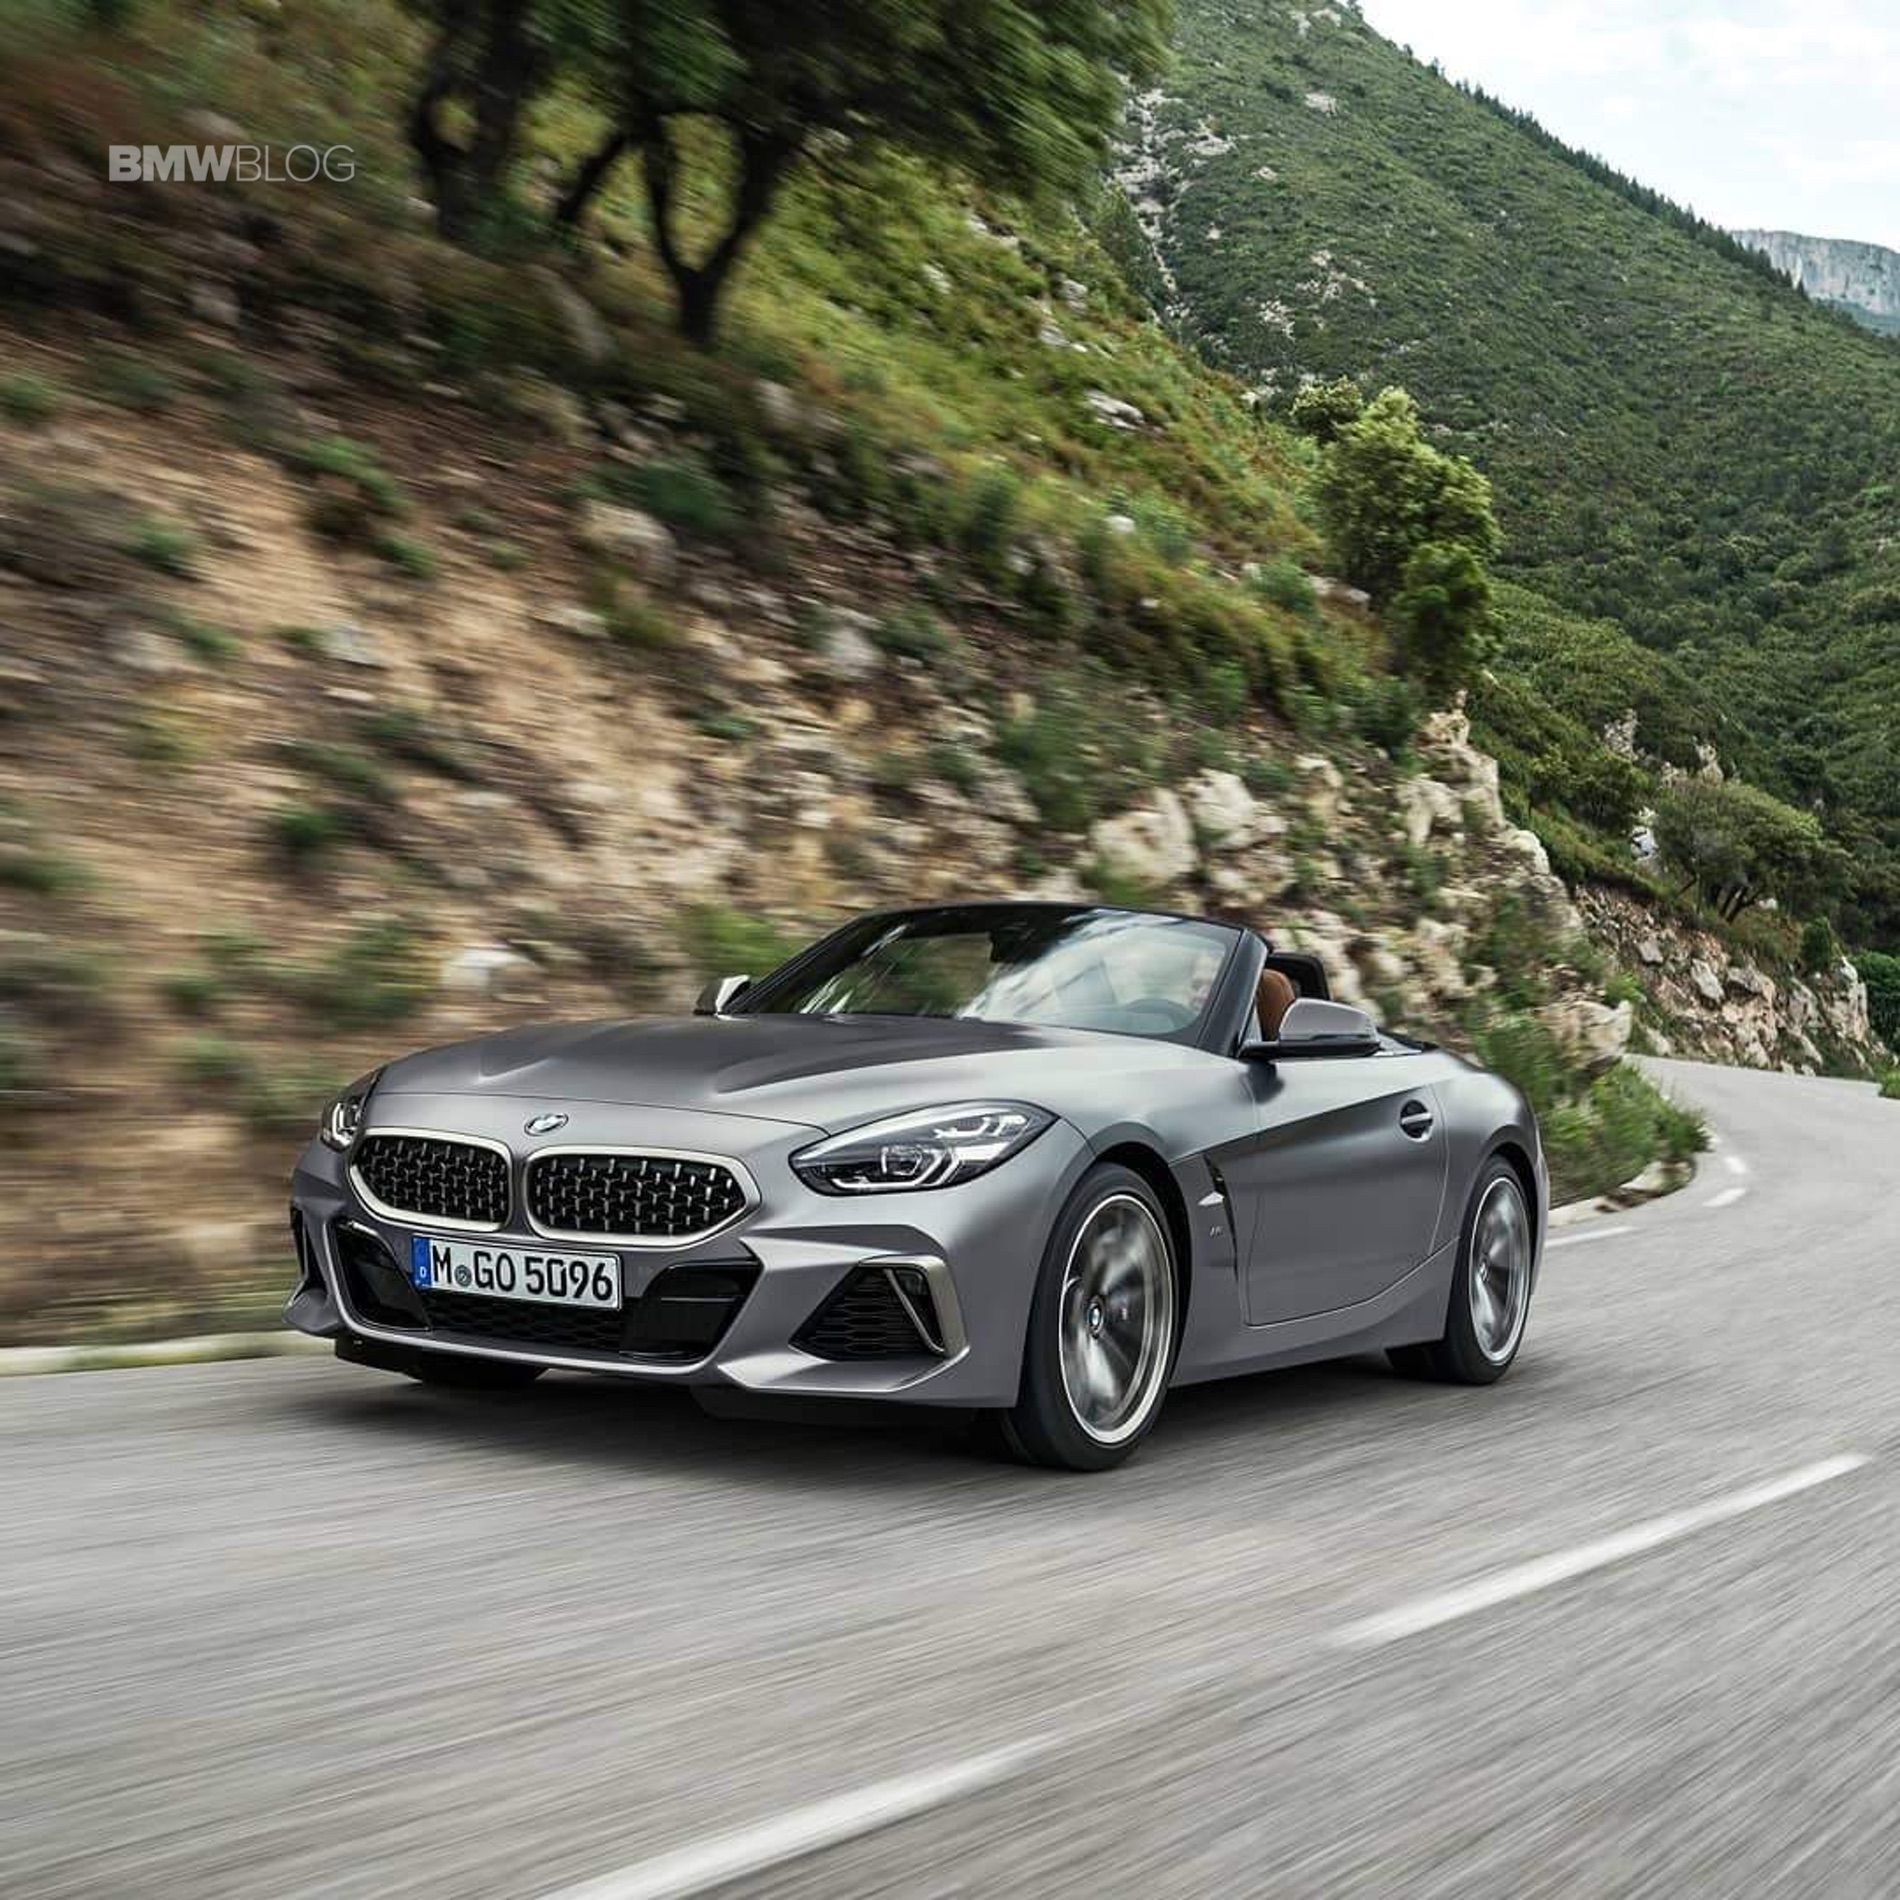 2019 Bmw Z4: The Details And No Z4 M